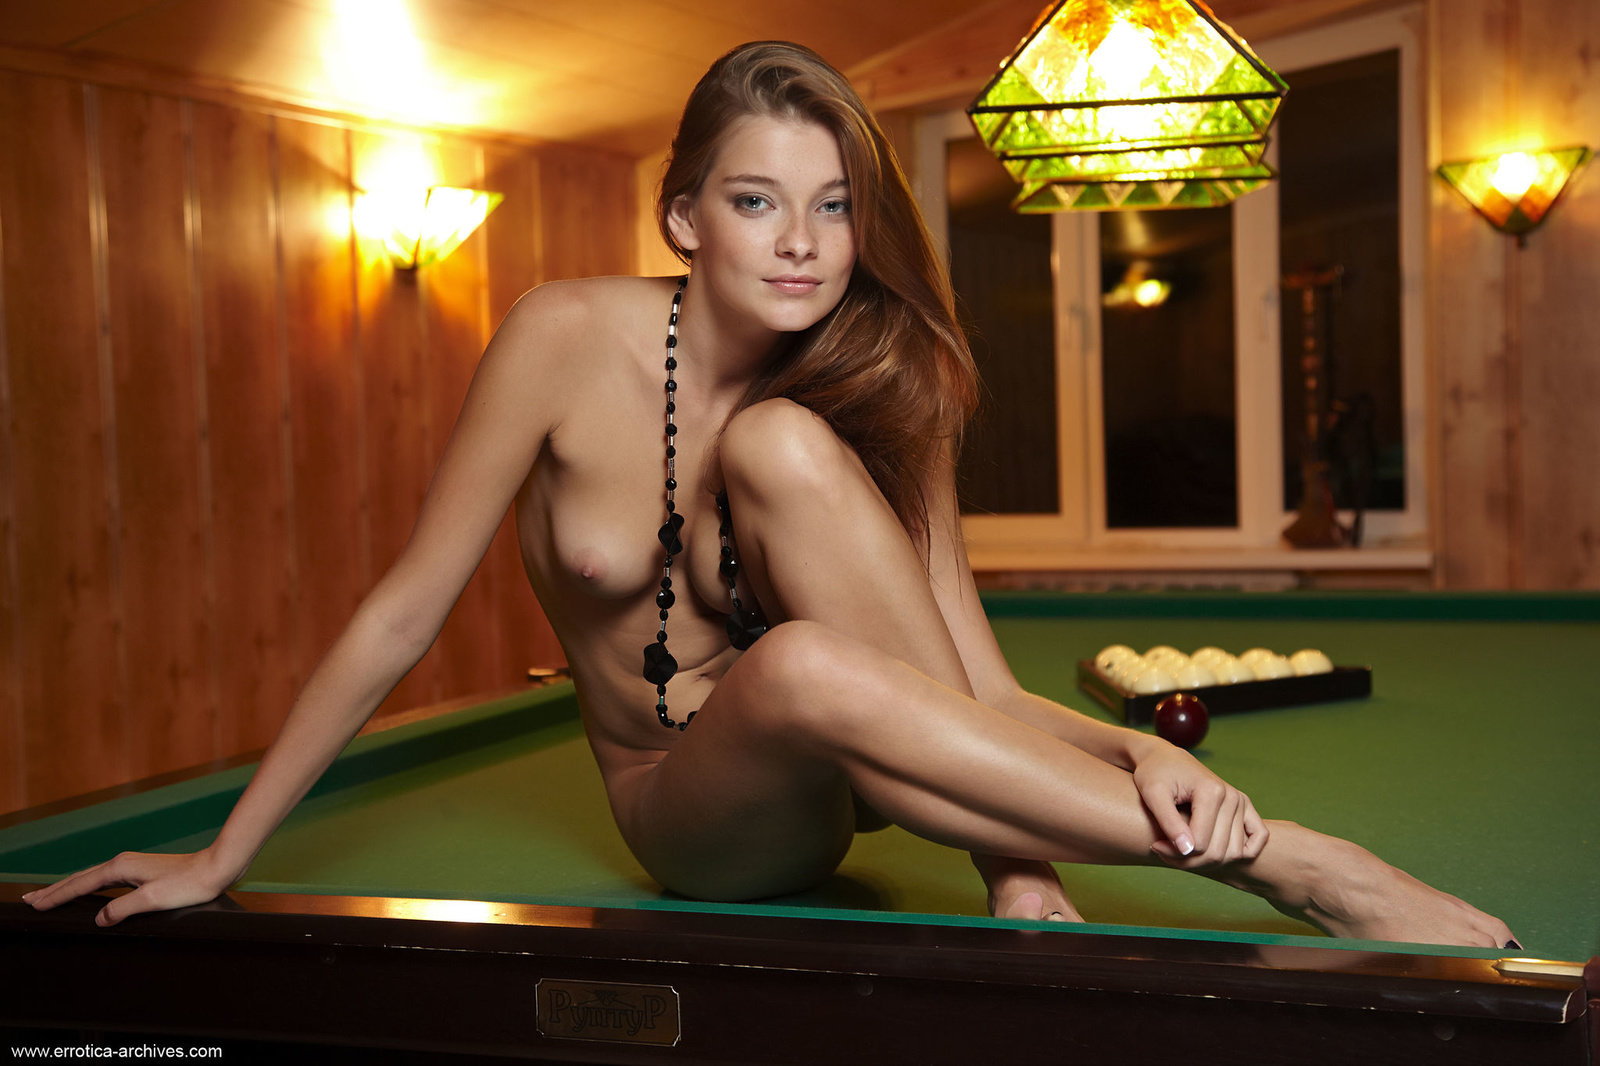 naked-girls-pool-table-hot-nude-college-coeds